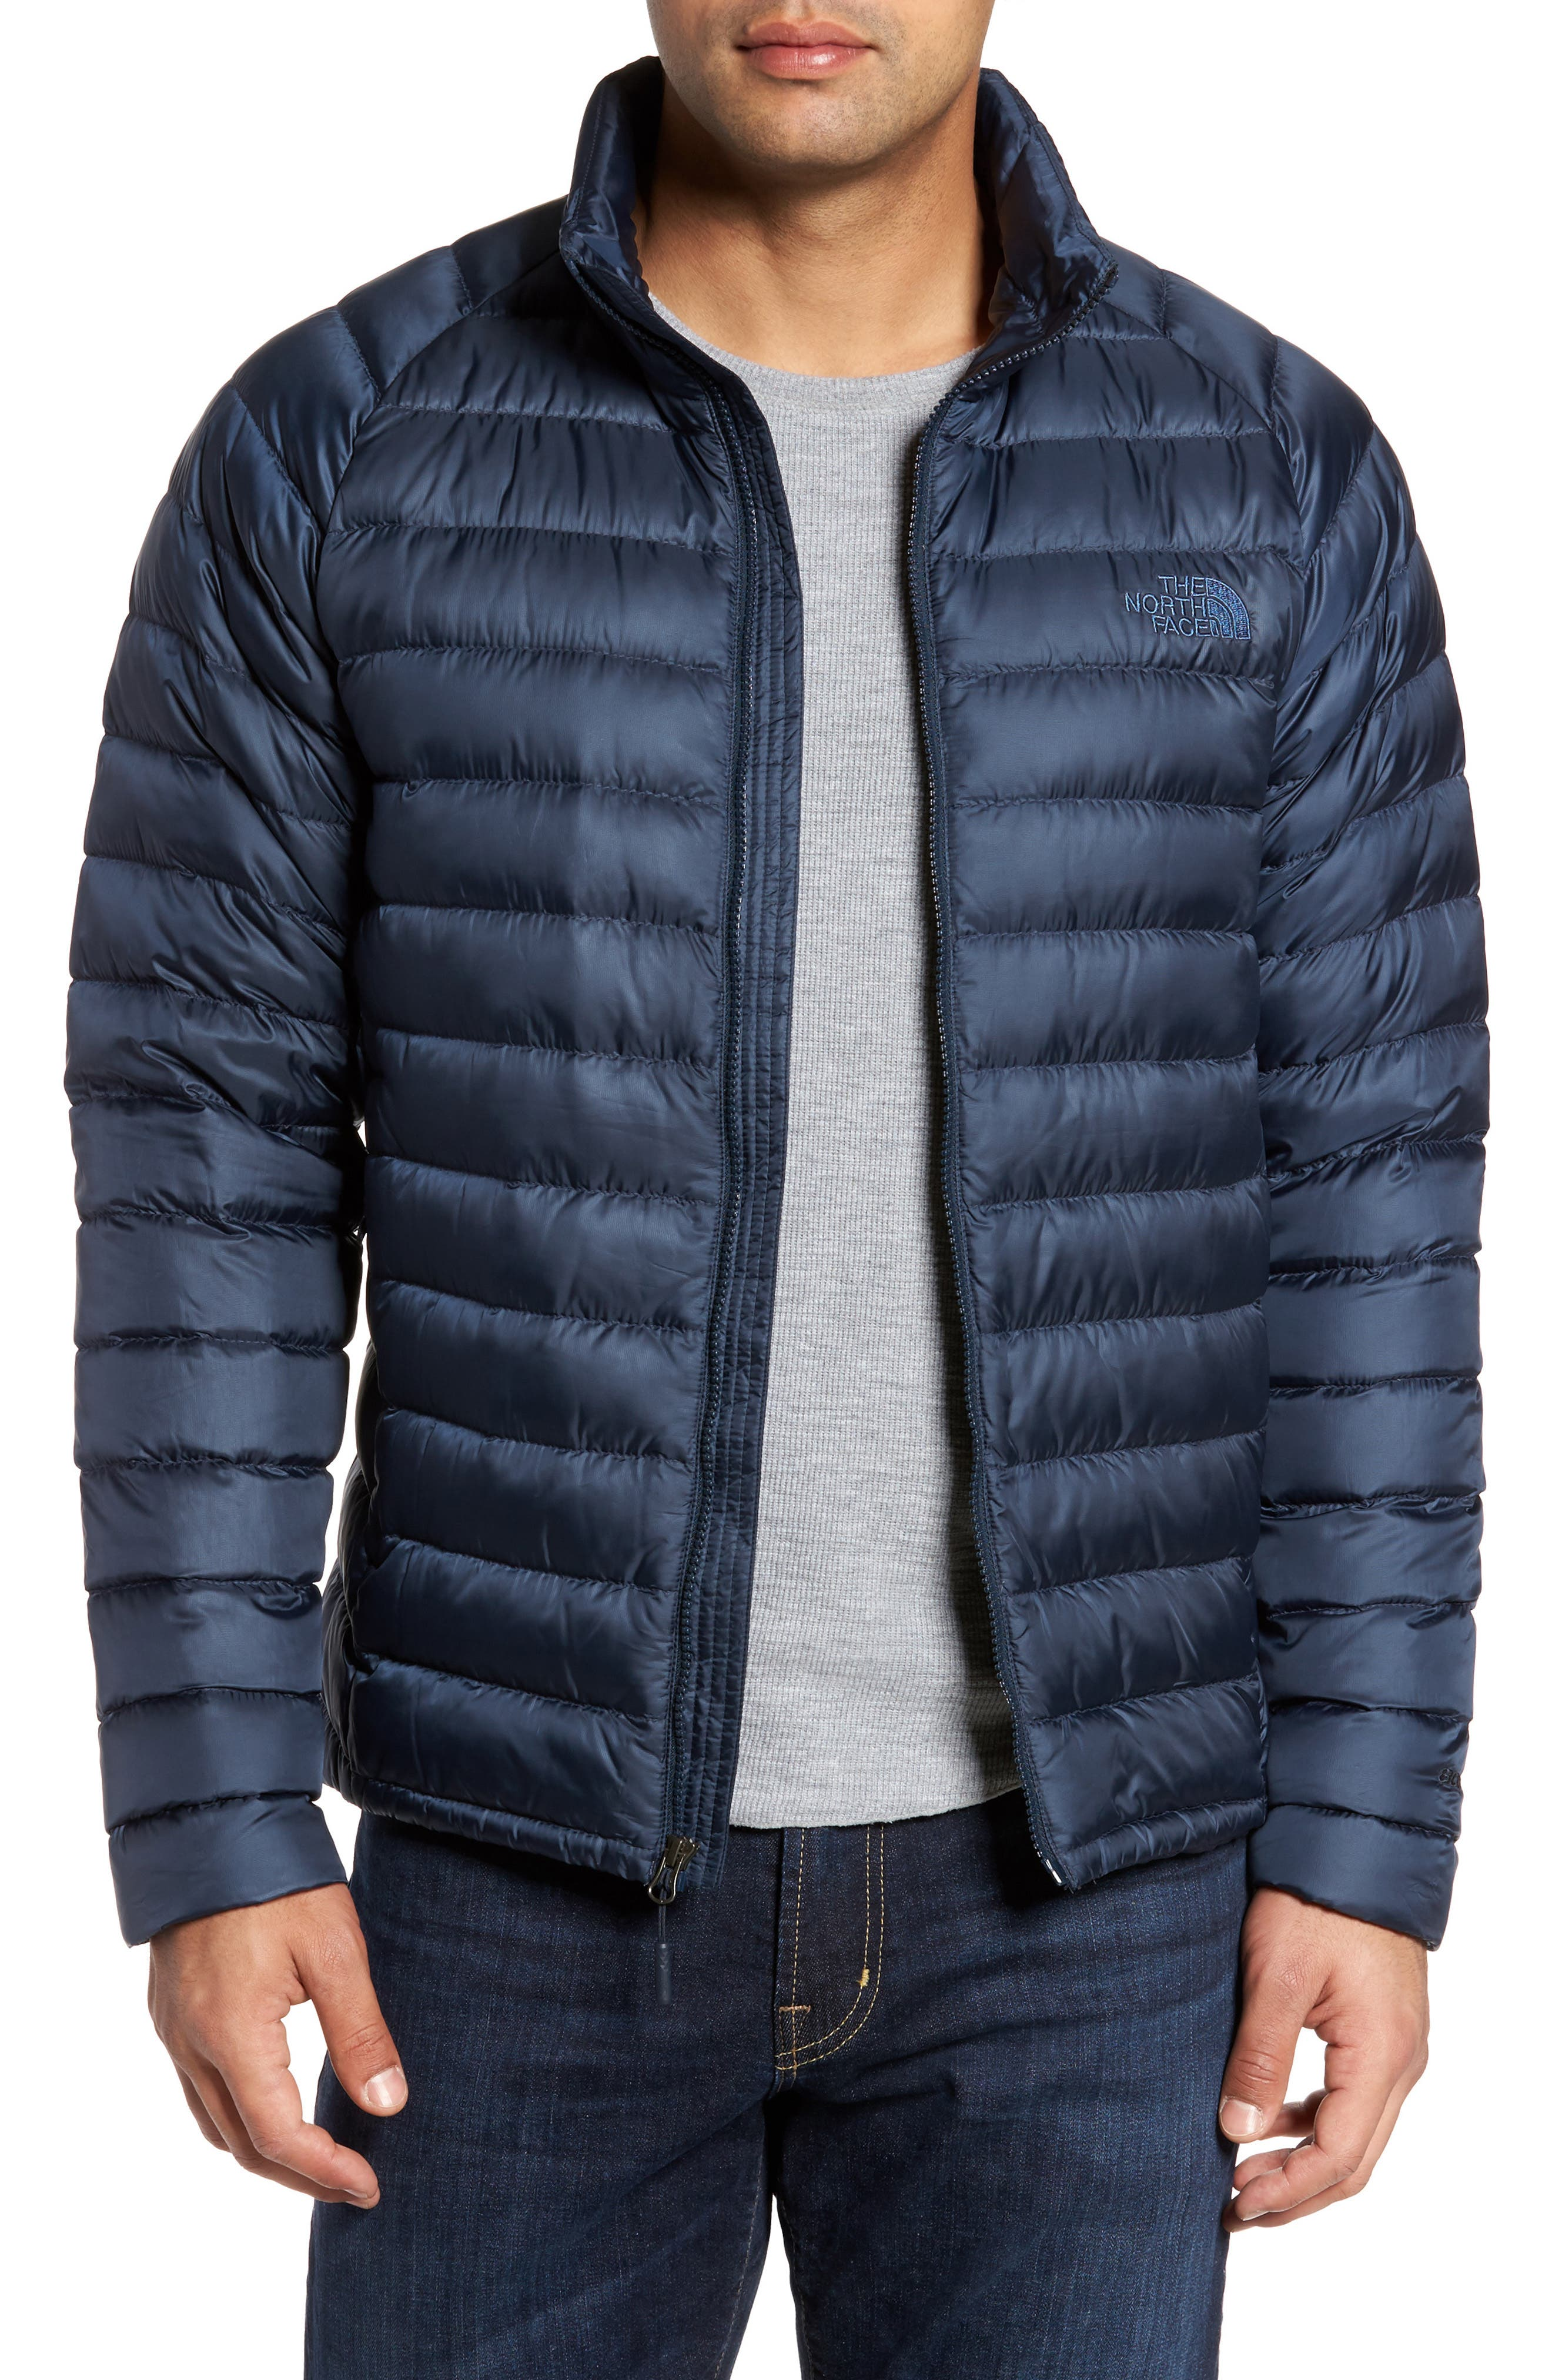 Trevail Water Repellent Packable Down Jacket,                             Main thumbnail 1, color,                             Urban Navy/ Urban Navy